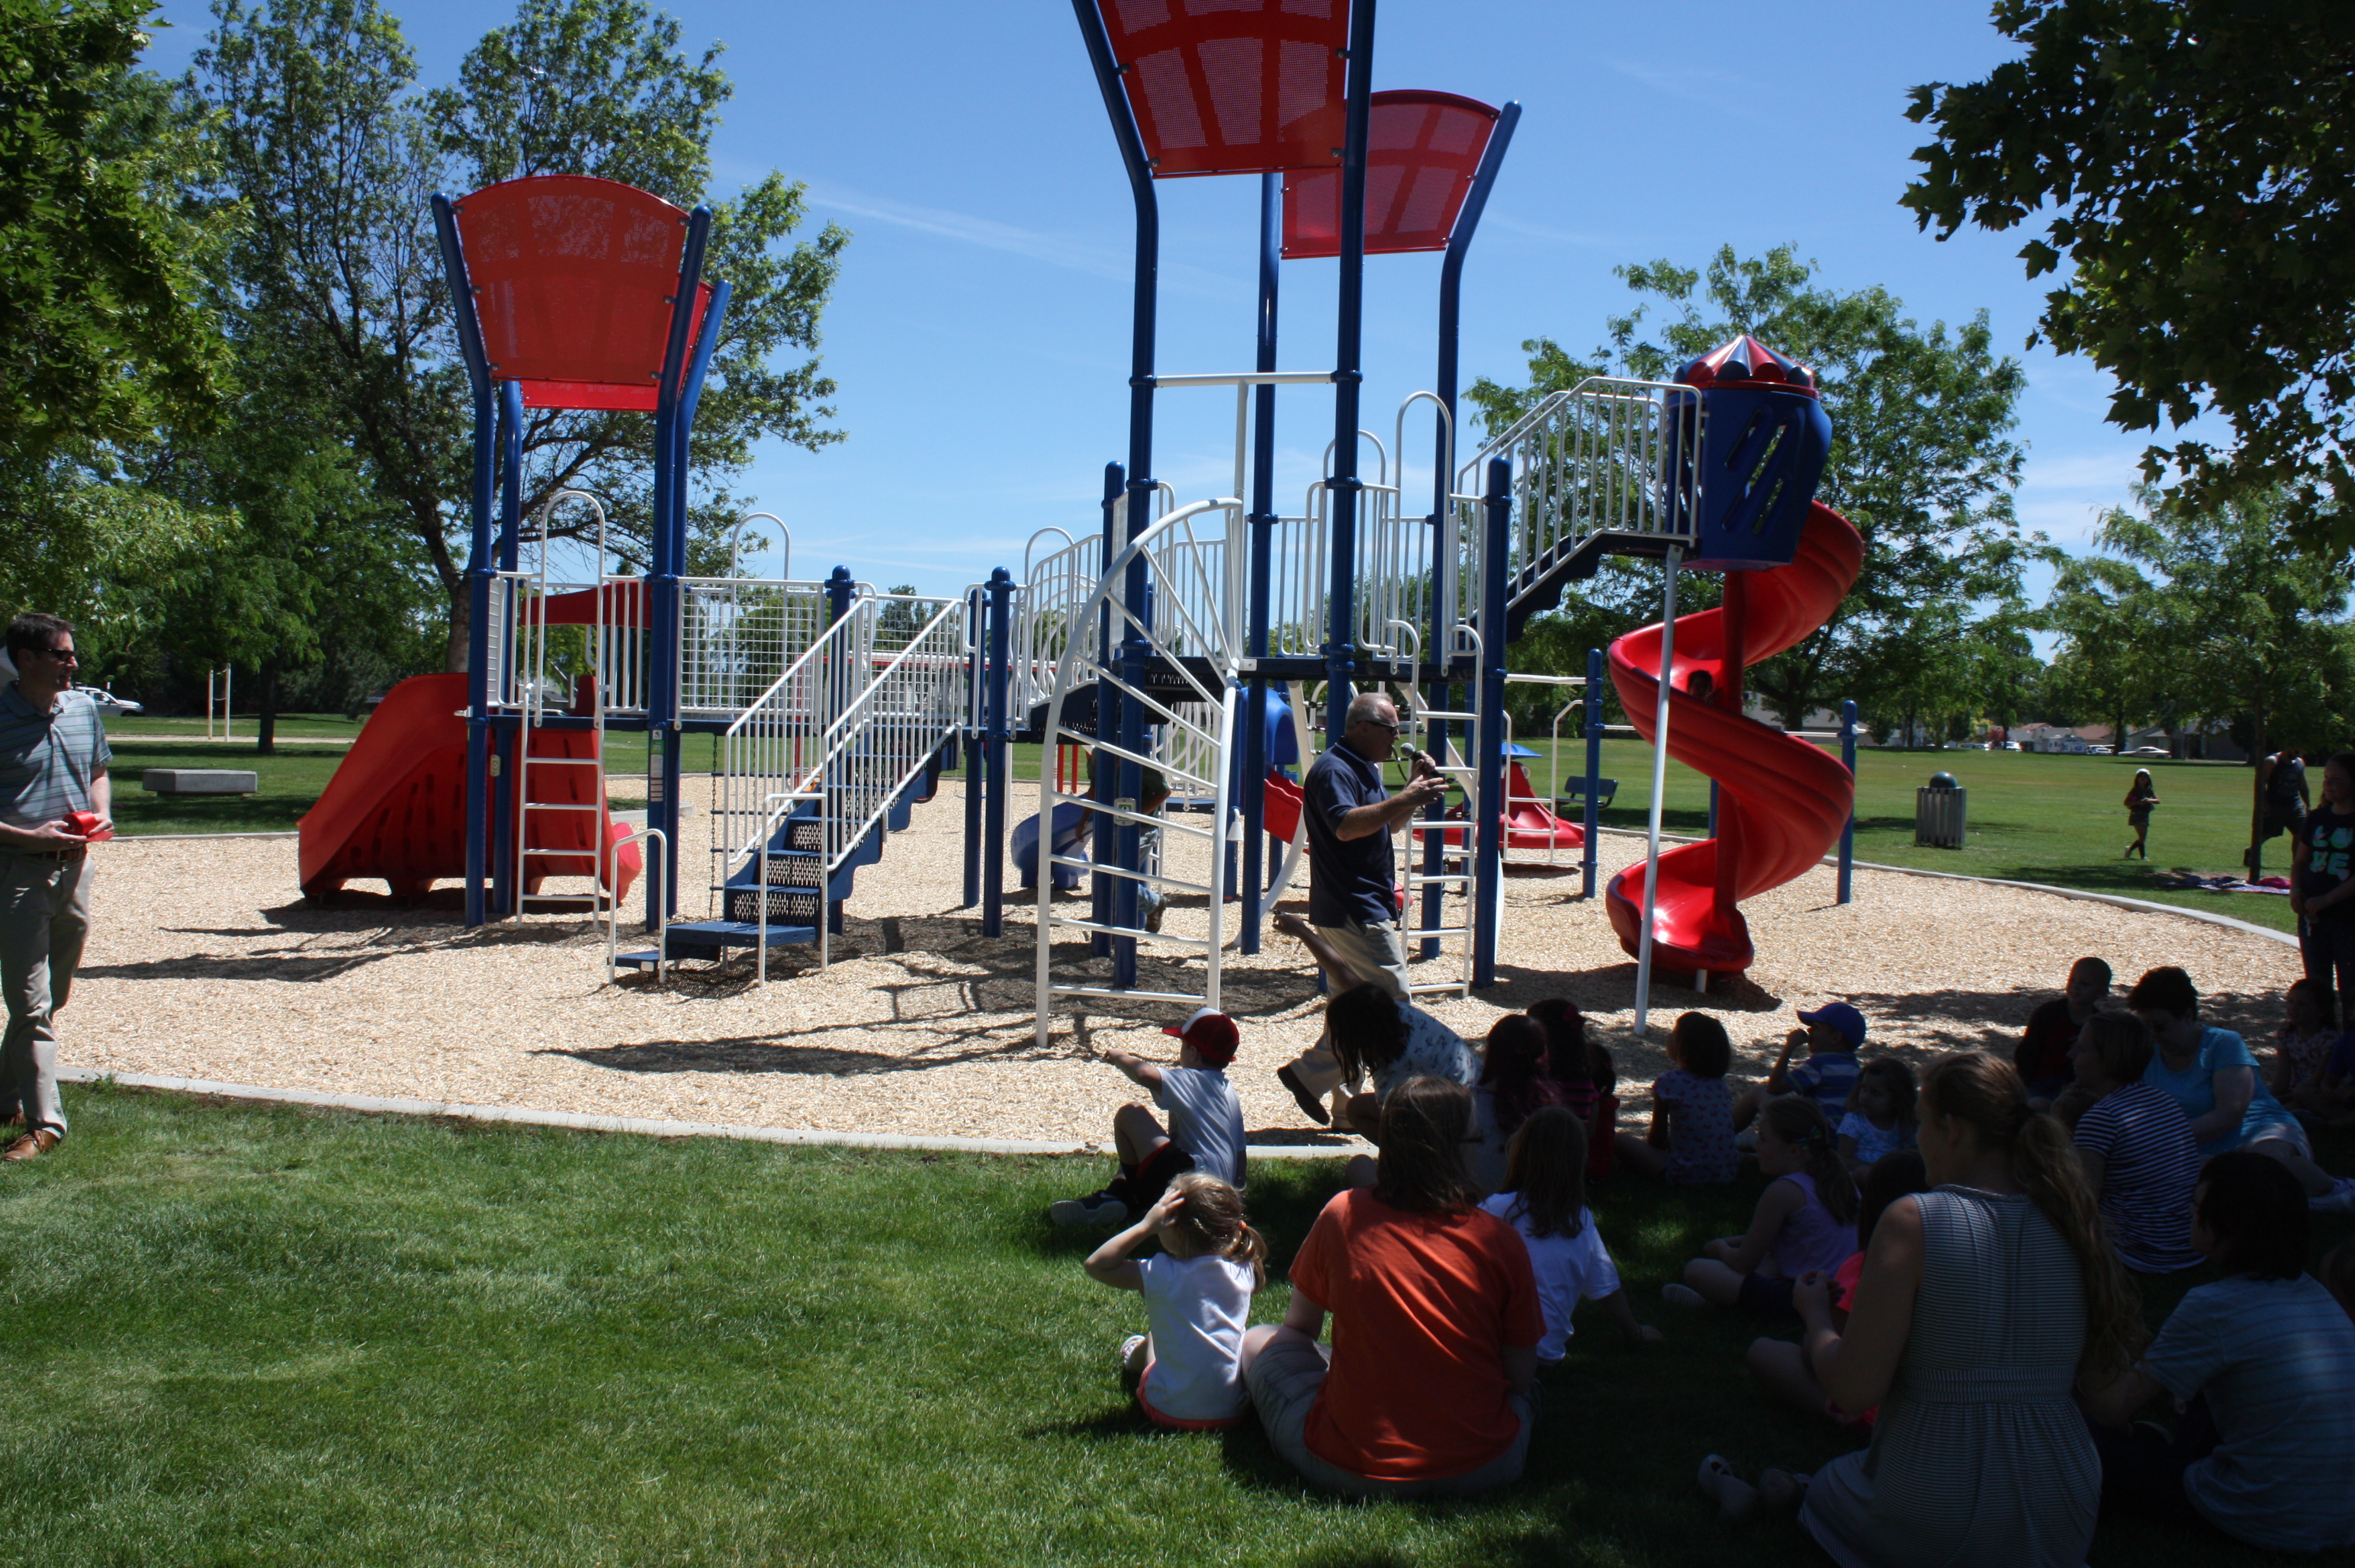 Group of children sitting in front of the play structure at Liberty Park.